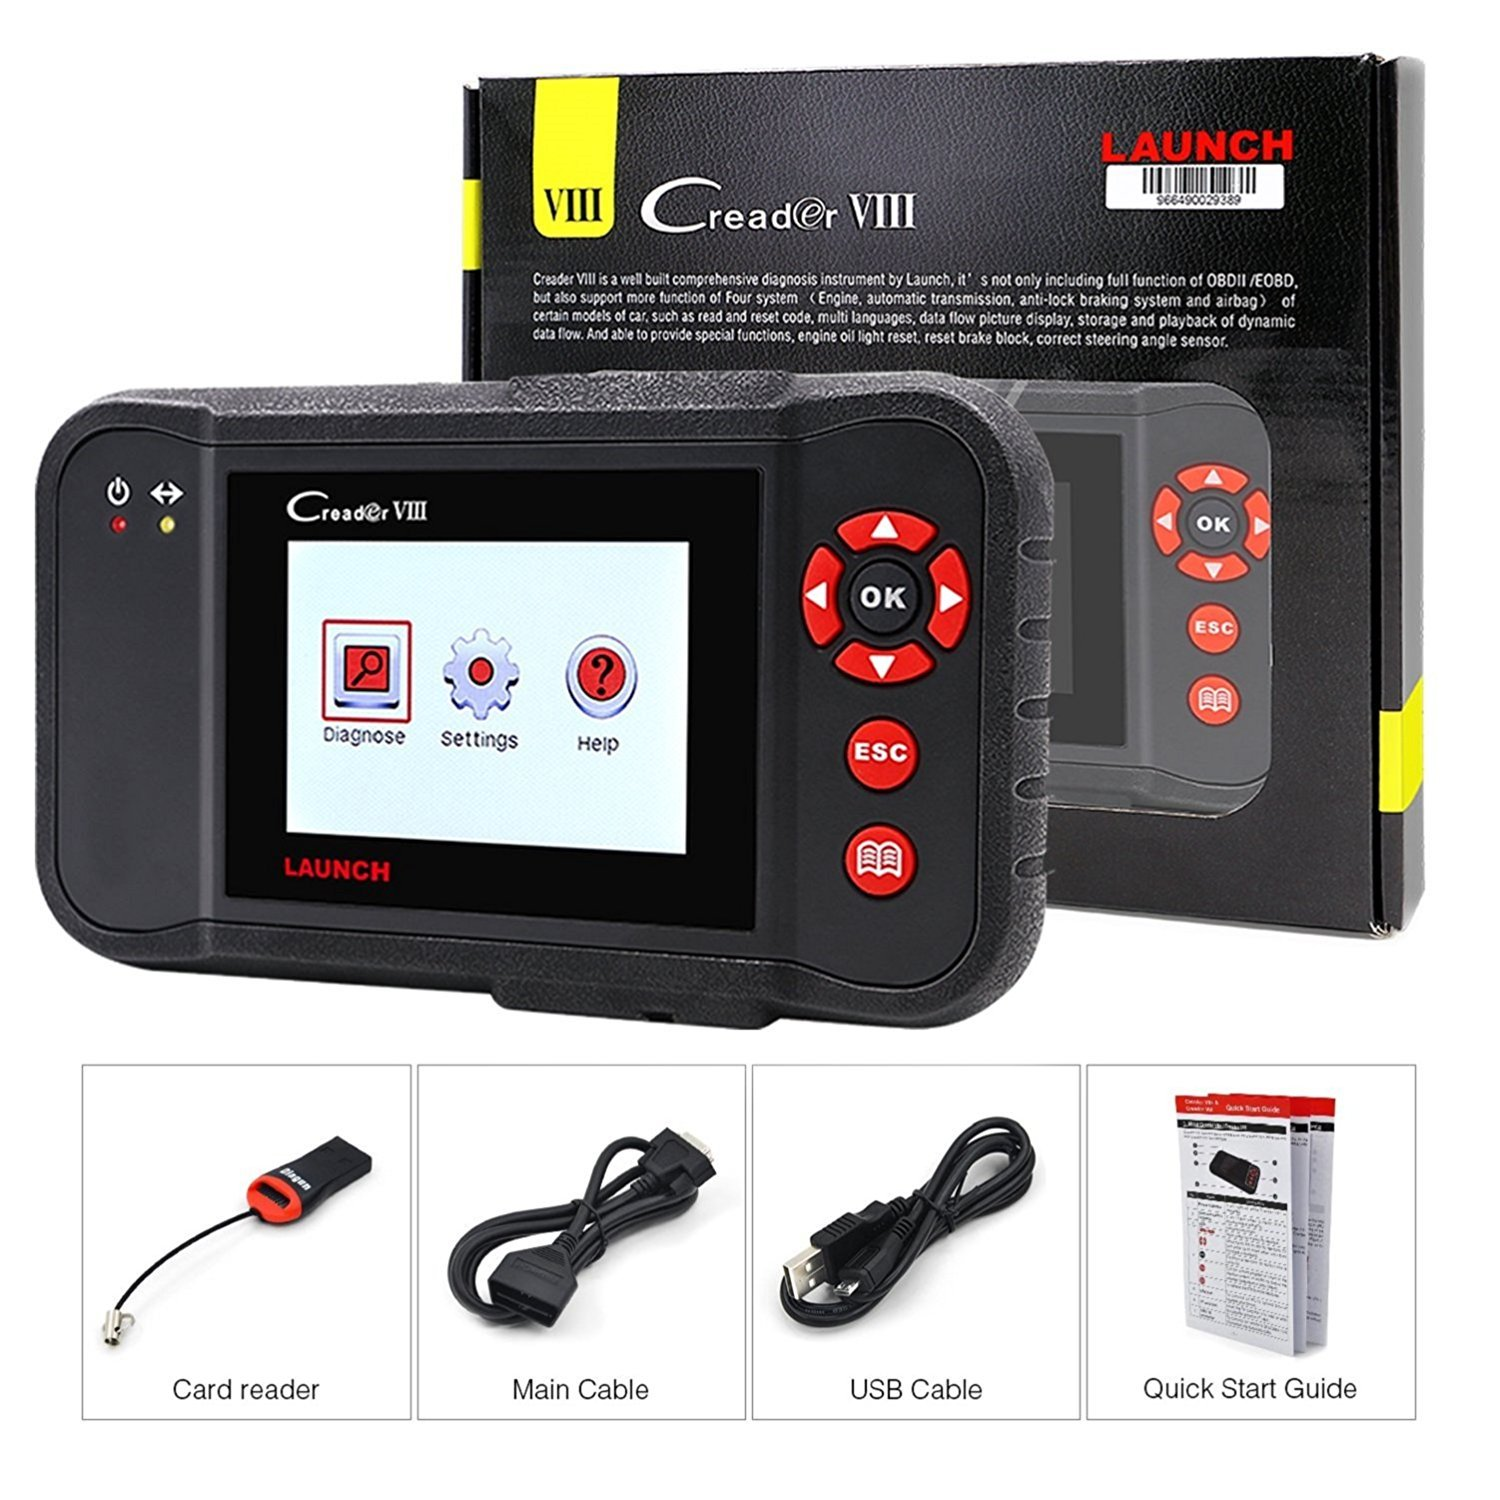 LAUNCH Black X431 Creader VIII (CRP129) OBD2 Diagnostic Scan Tool ENG/at/ABS/SRS Code Reader Scanner with EPB SAS Oil Reset Function by LAUNCH (Image #5)